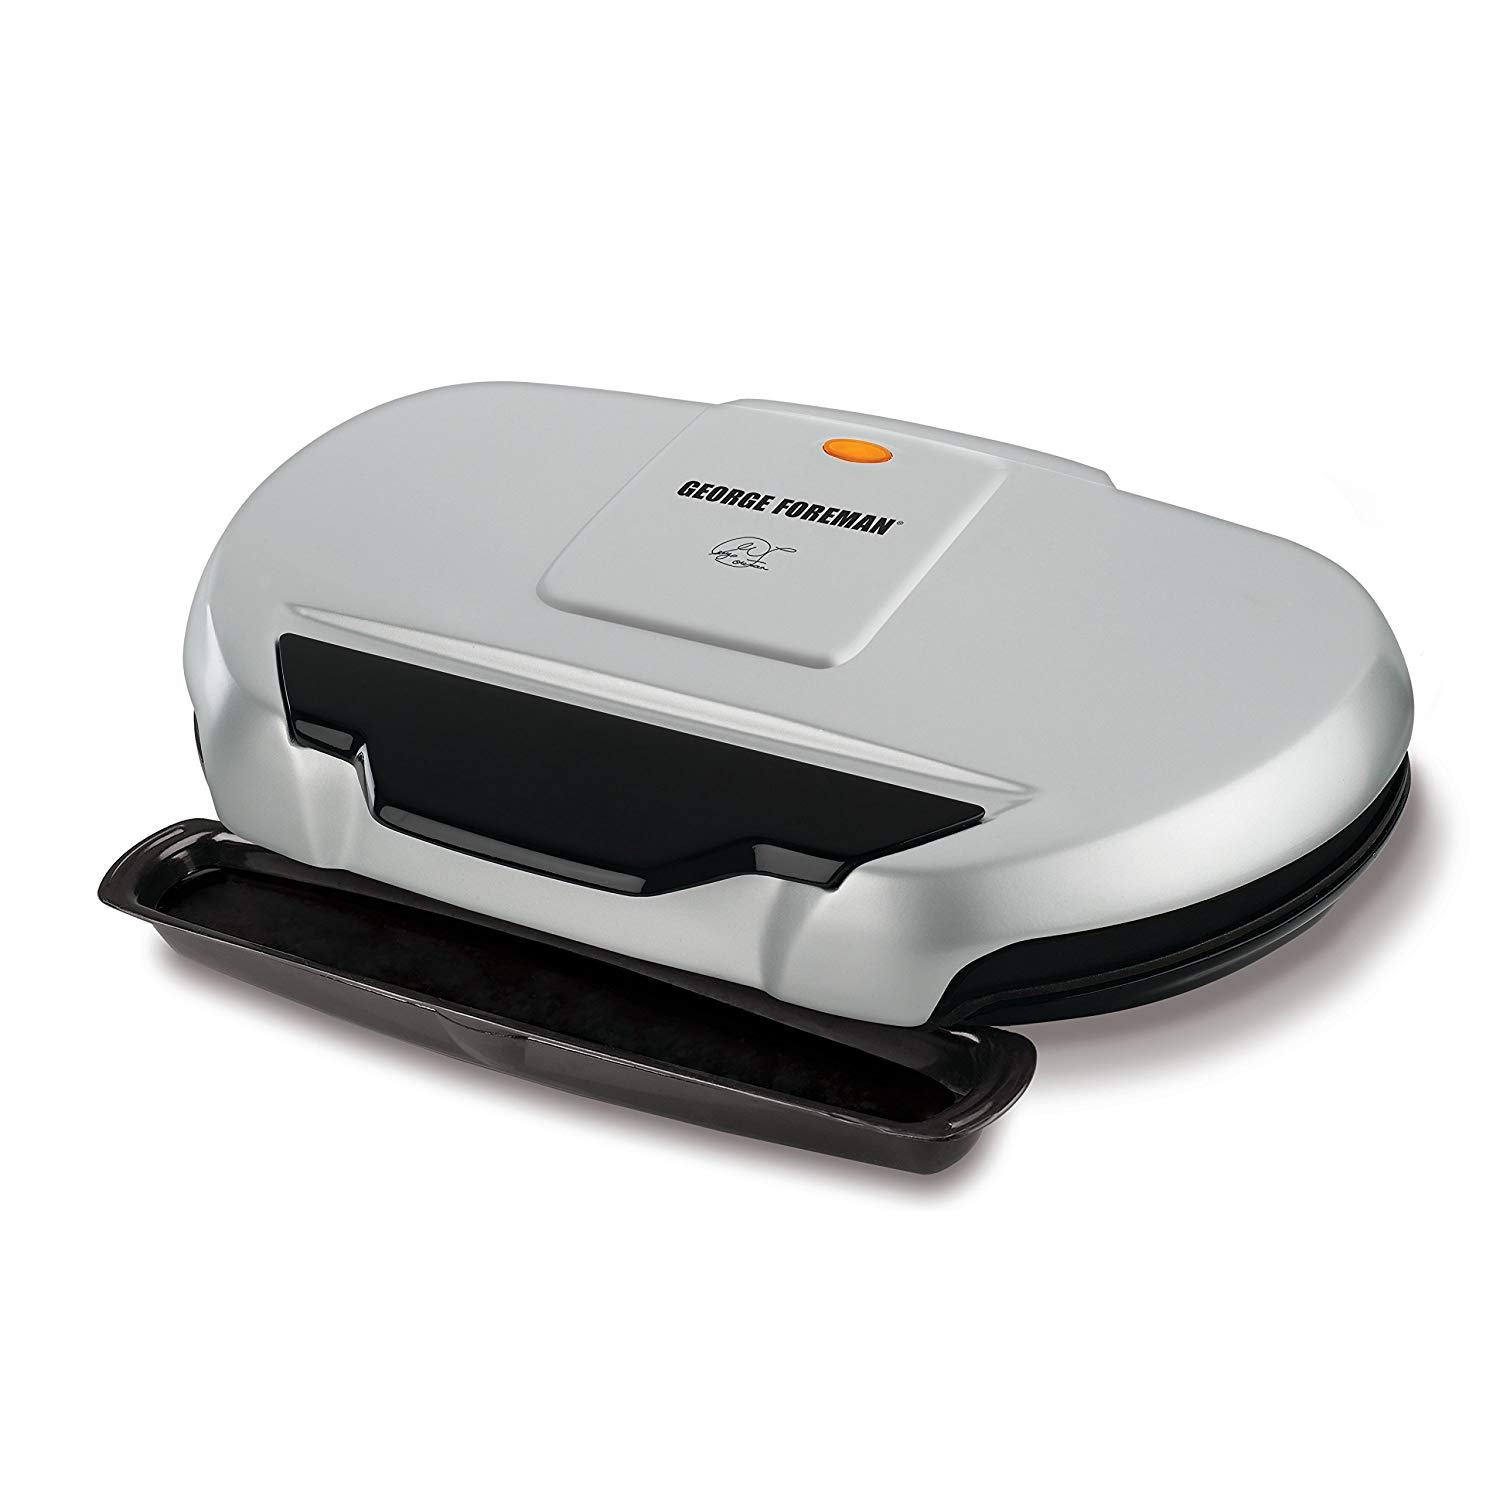 George Foreman 9-Serving Classic Plate Electric Grill and Panini Press. Silver. GR144